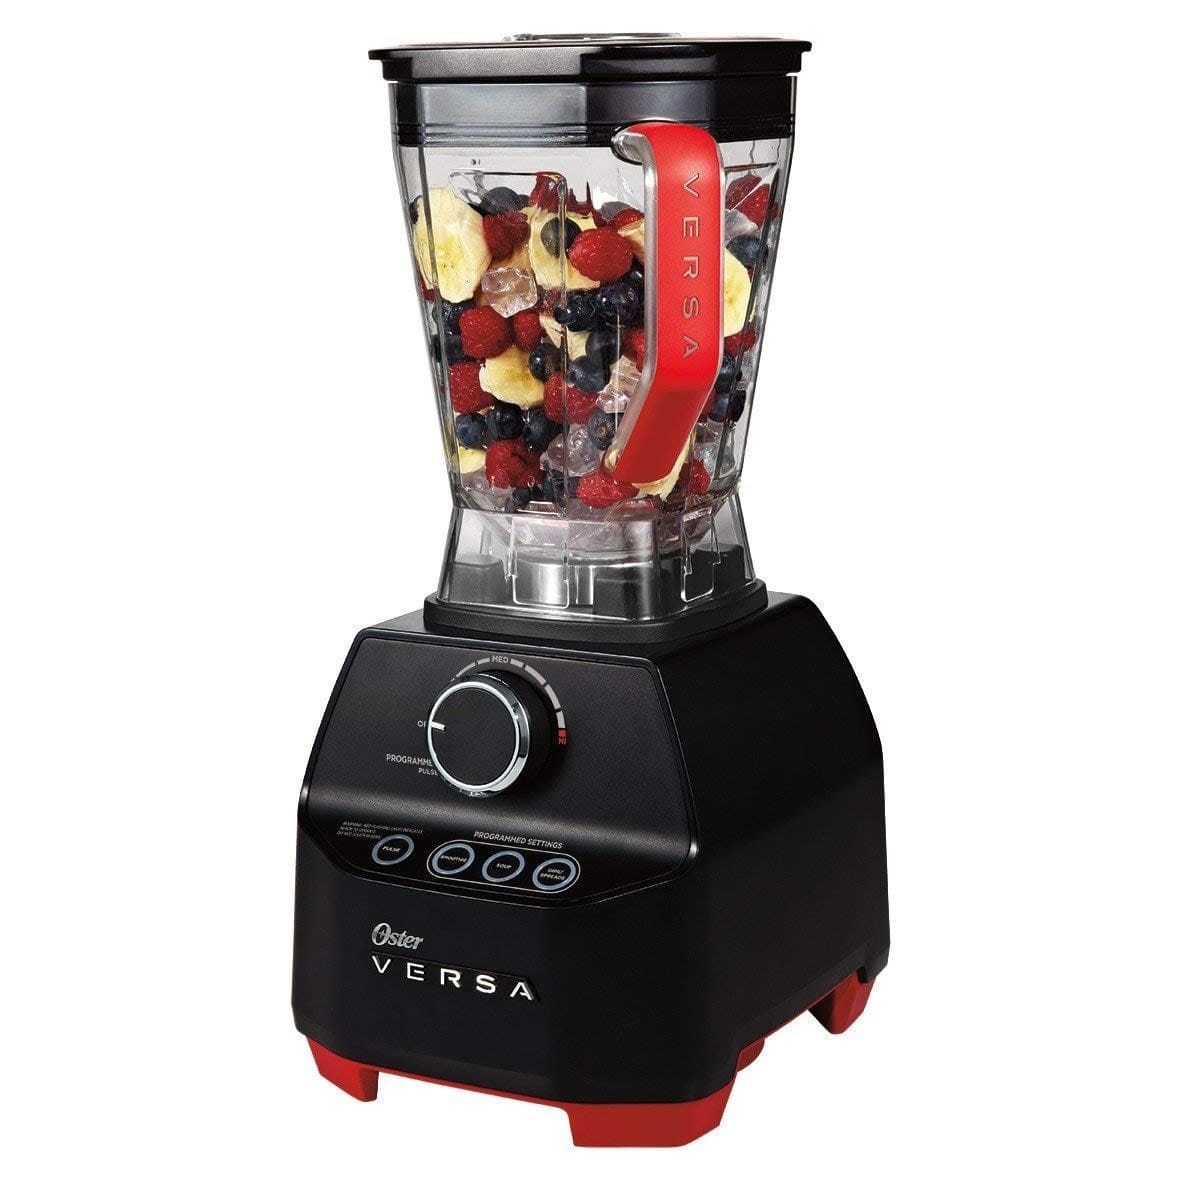 Xmas gifts- Oster Versa Performance Blender